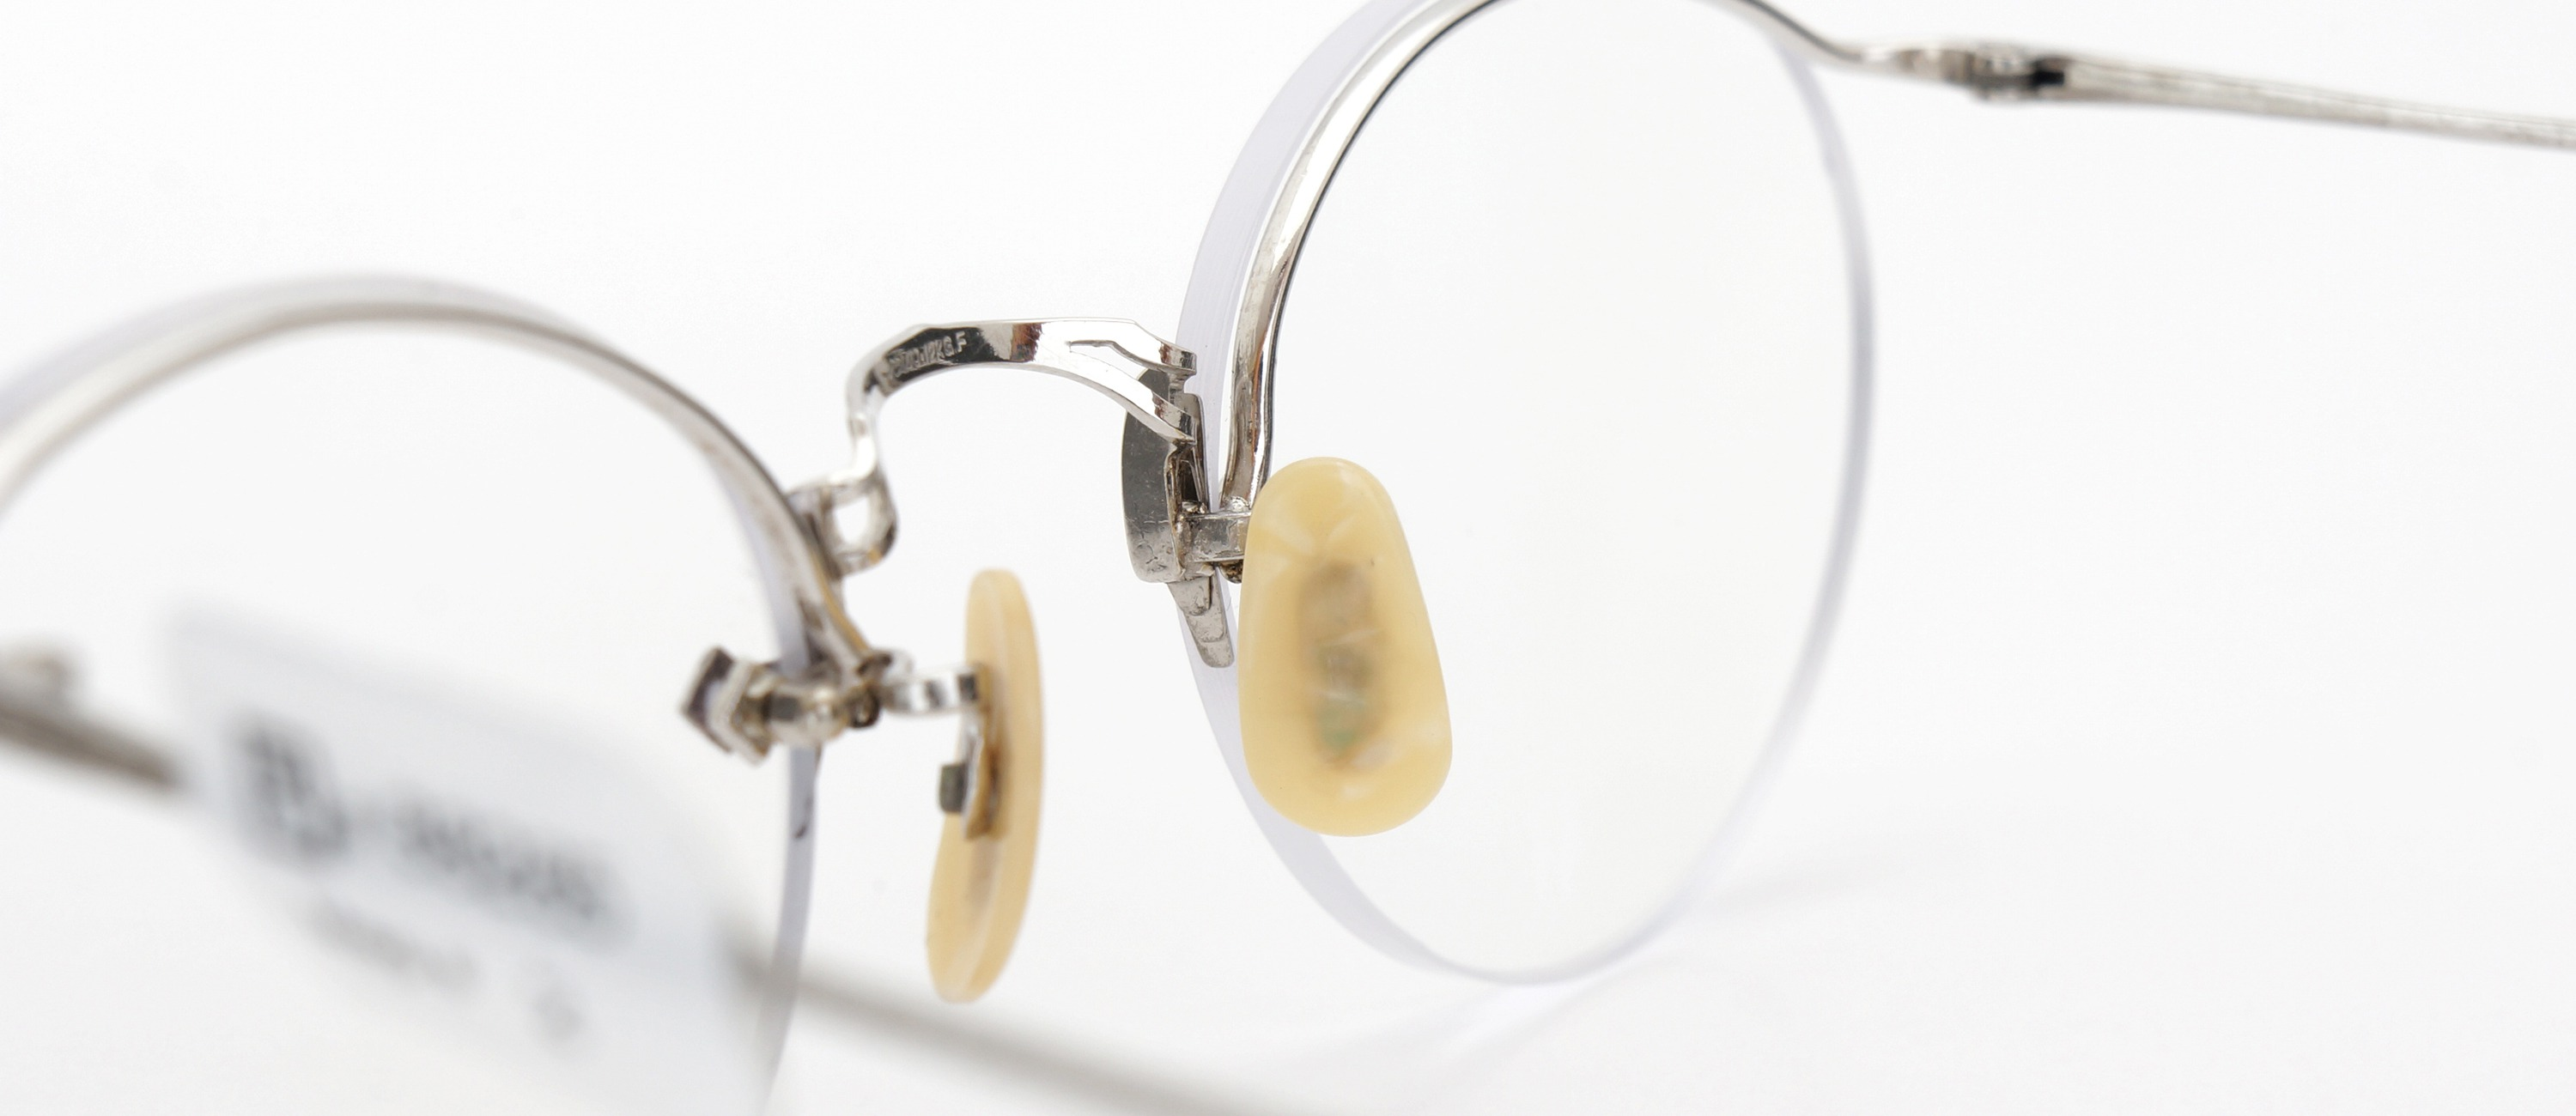 The Spectacle メガネ 1938 American Optical Numont Ful-Vue P-6 WG 45-23 イメージ11